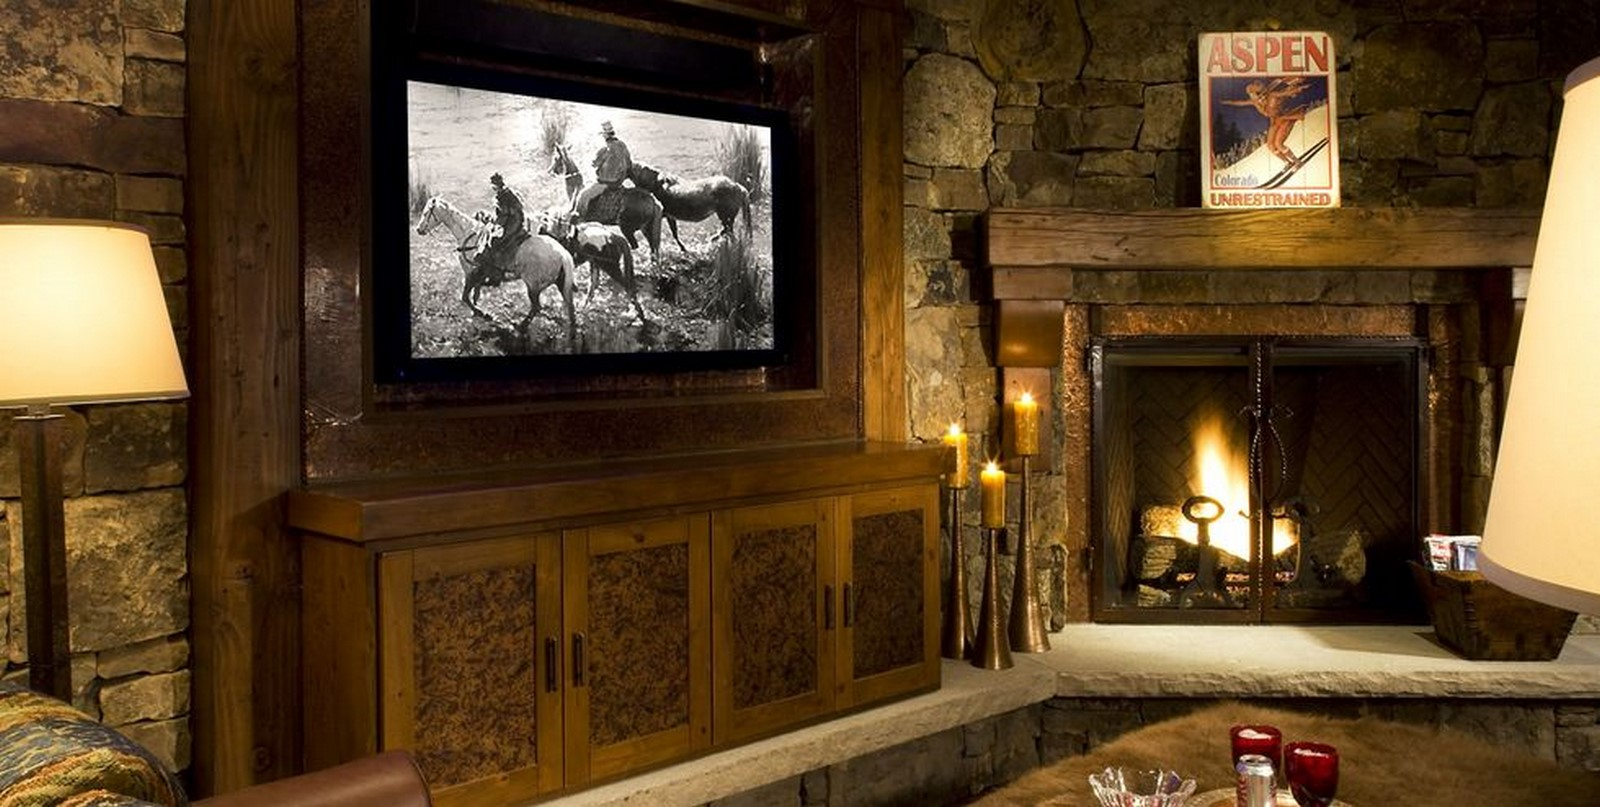 30 Examples of Rustic interiors for living rooms - Sheet3